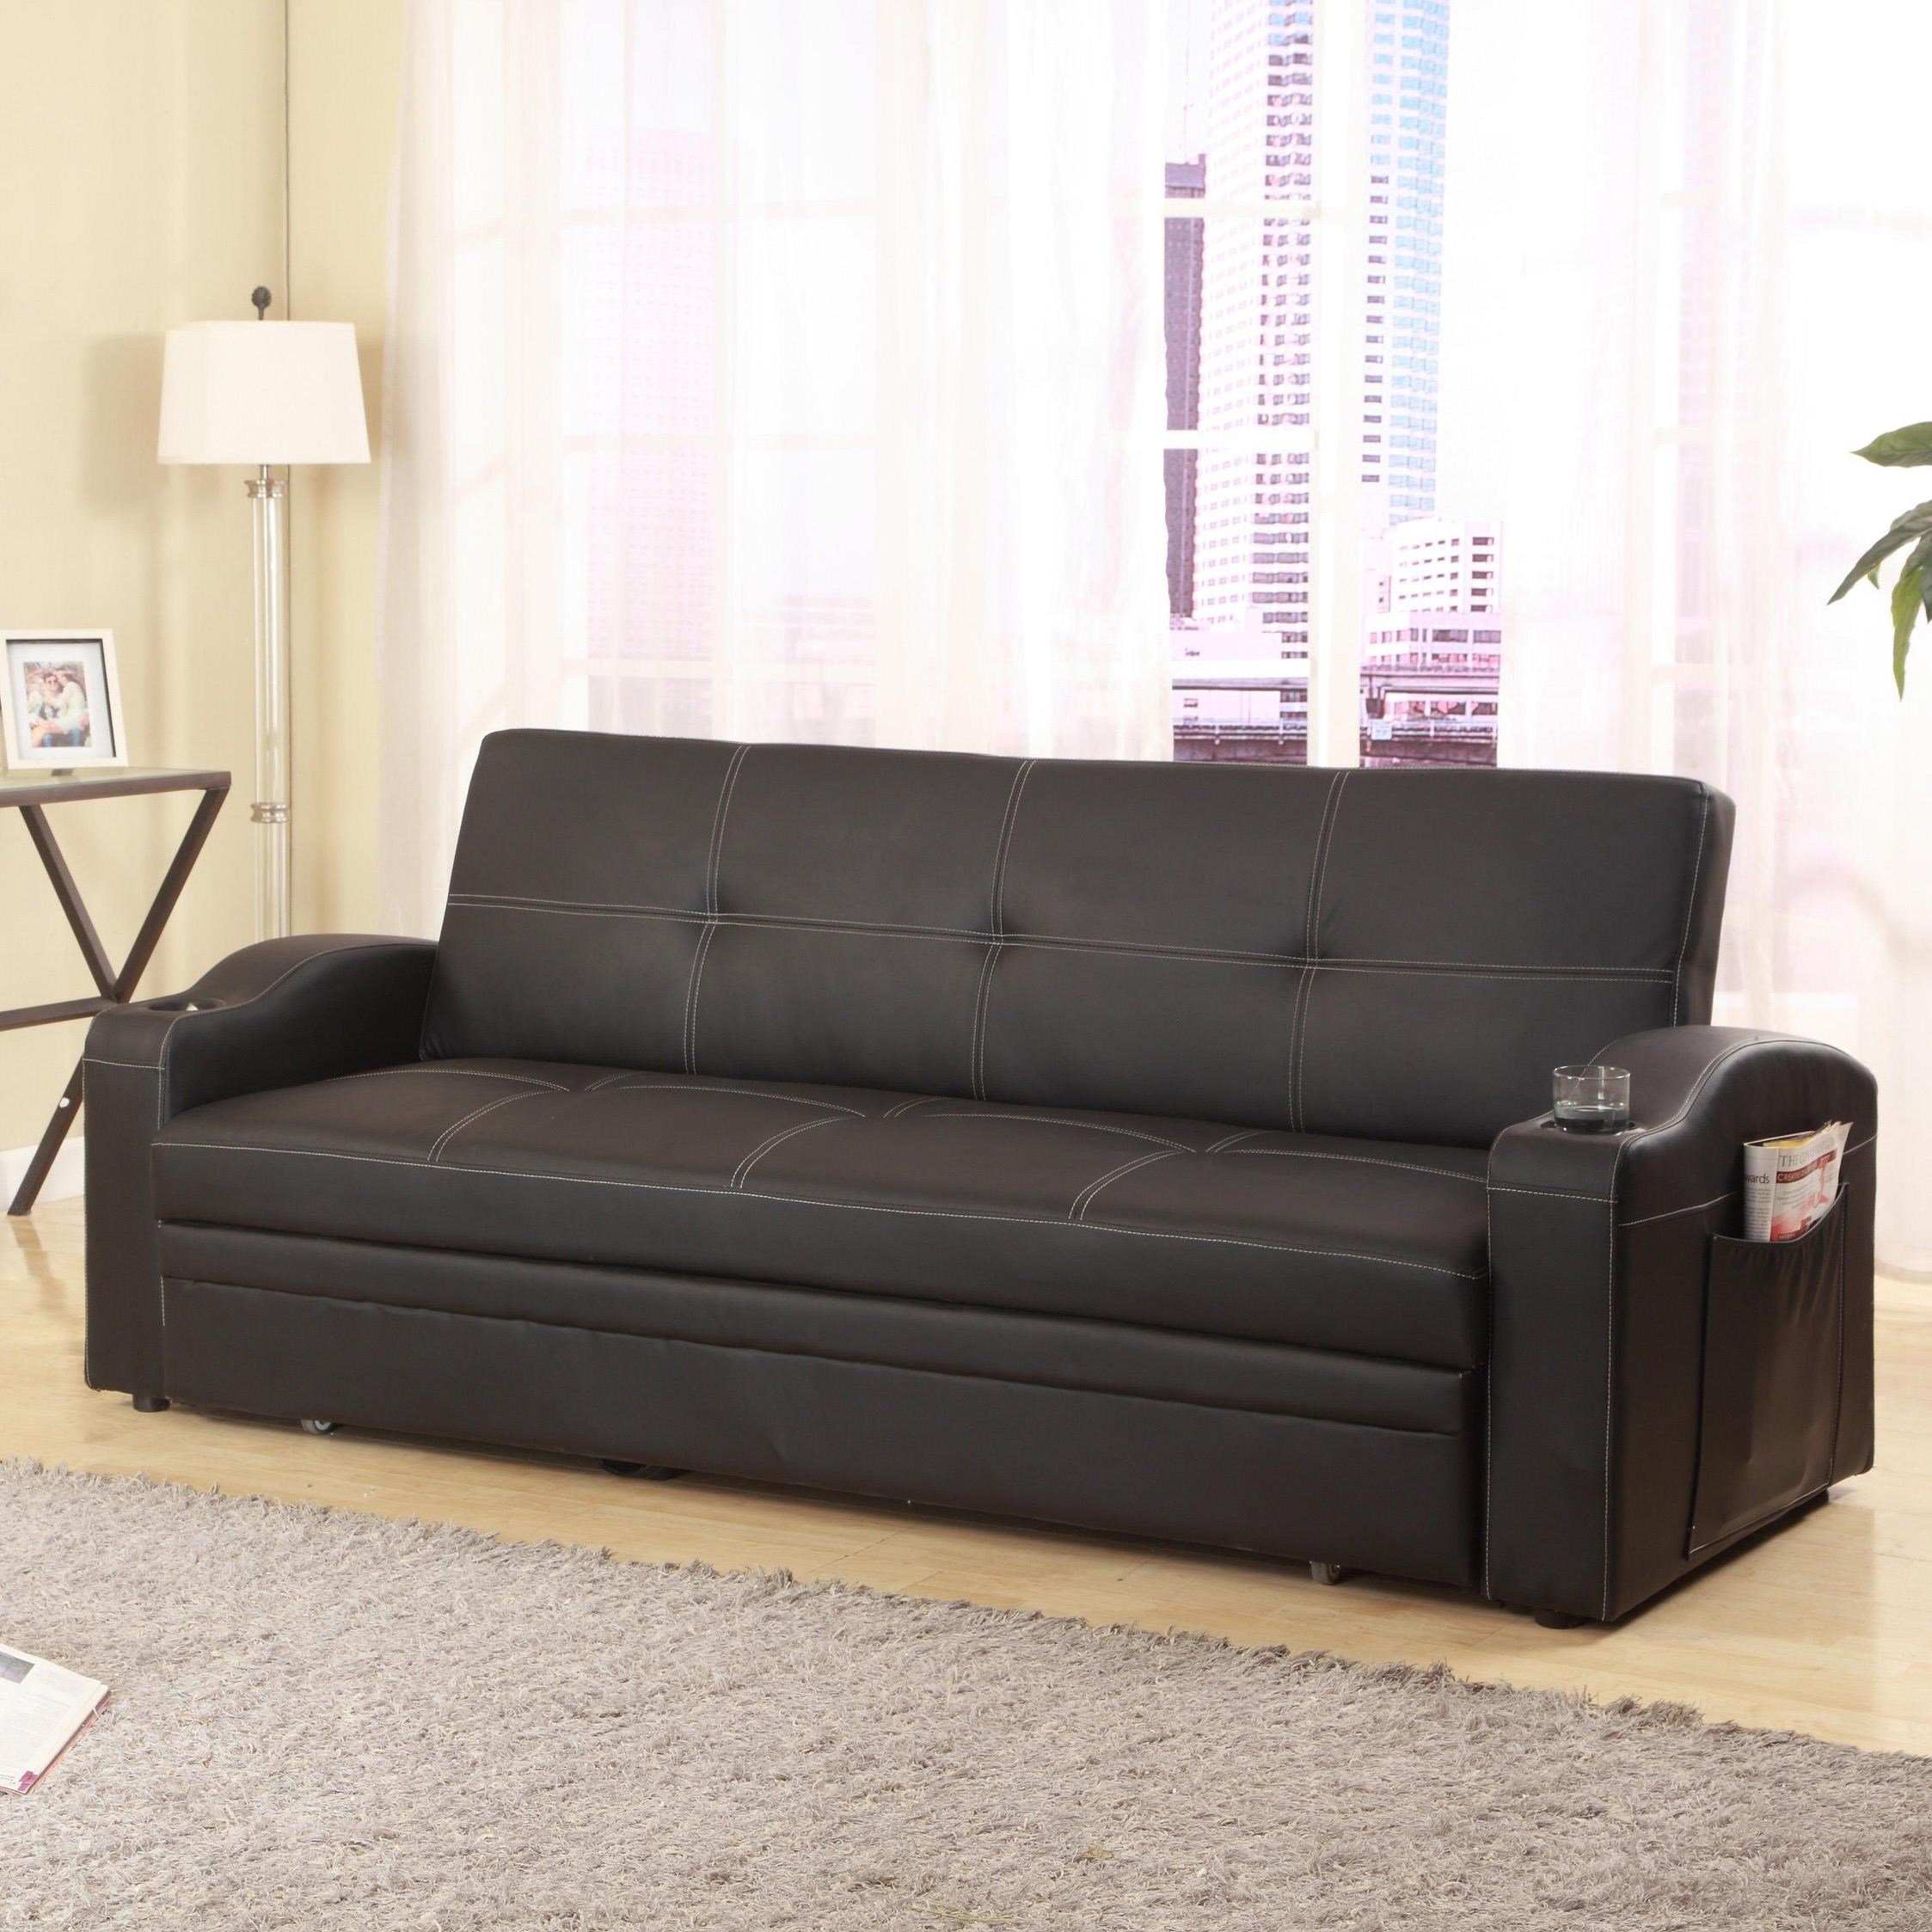 Easton Adjustable Sofa with Cup Holders and Pull-Out Bed